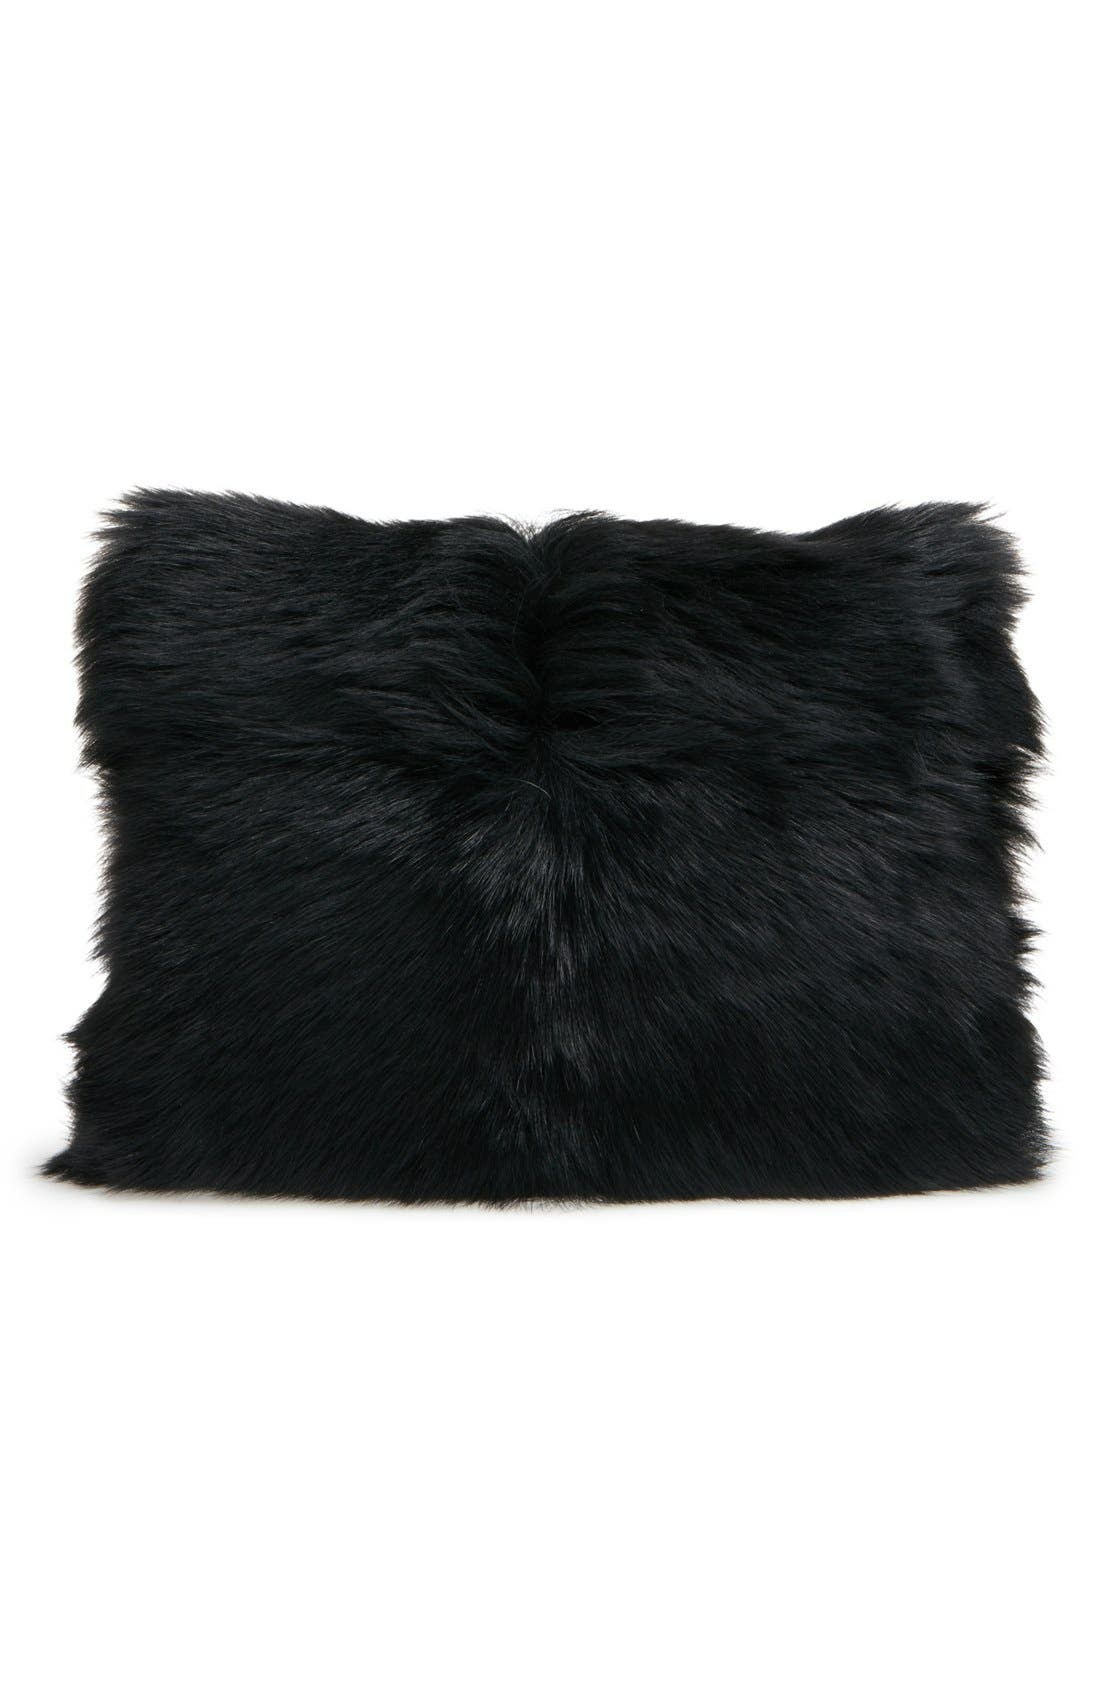 Alternate Image 3  - MARC BY MARC JACOBS Shearling Square Clutch